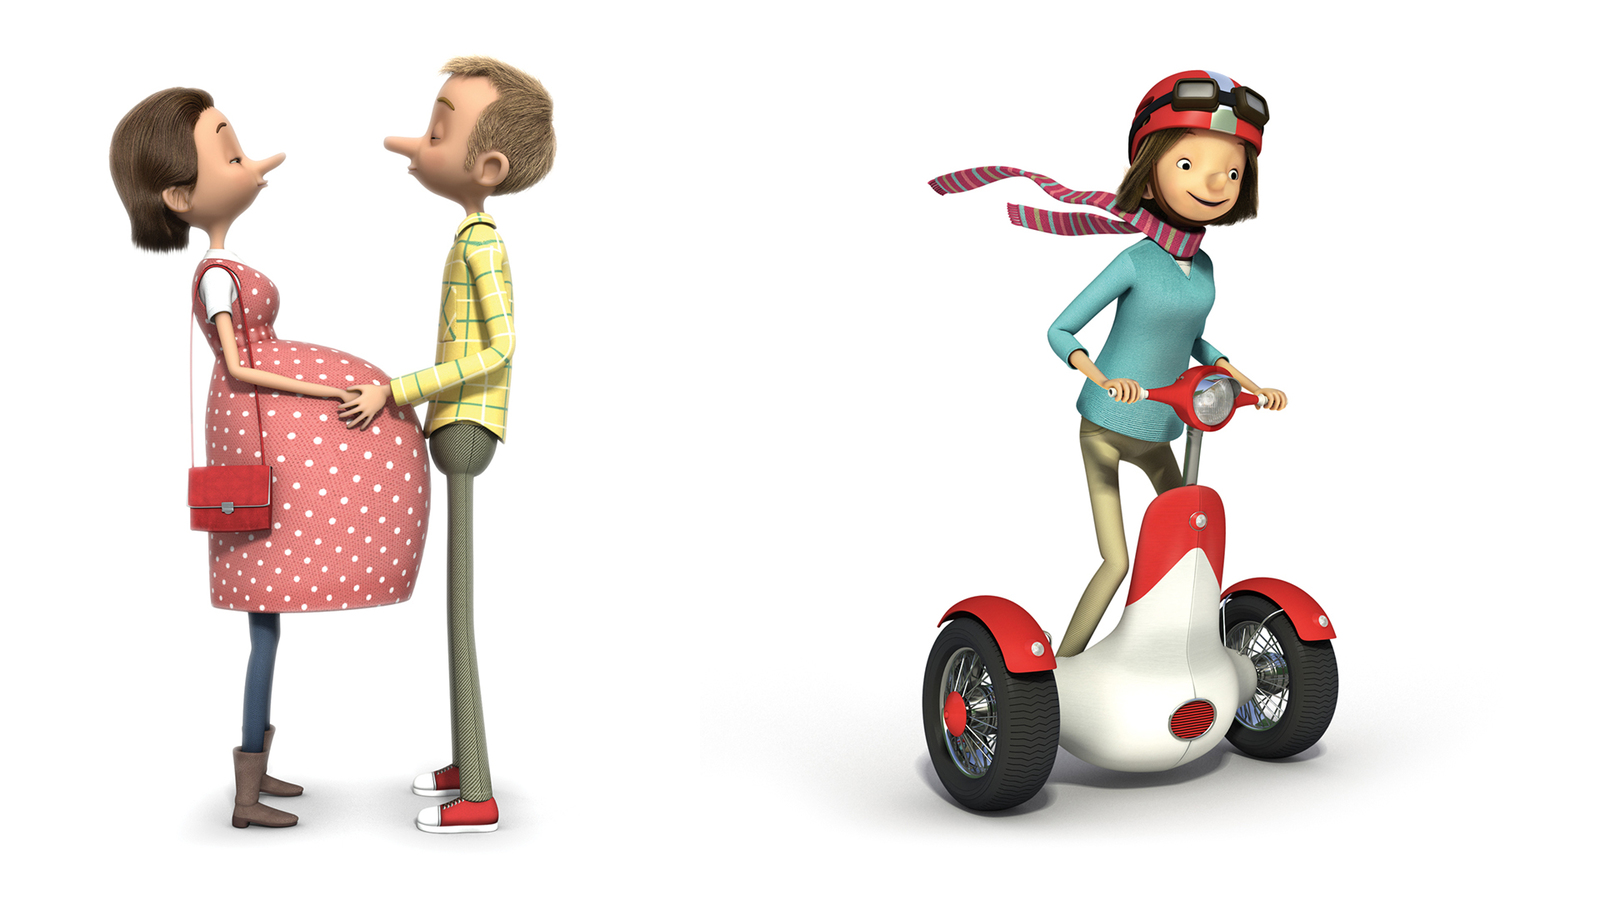 3d illustrations of characters from 'for the journey campaign'